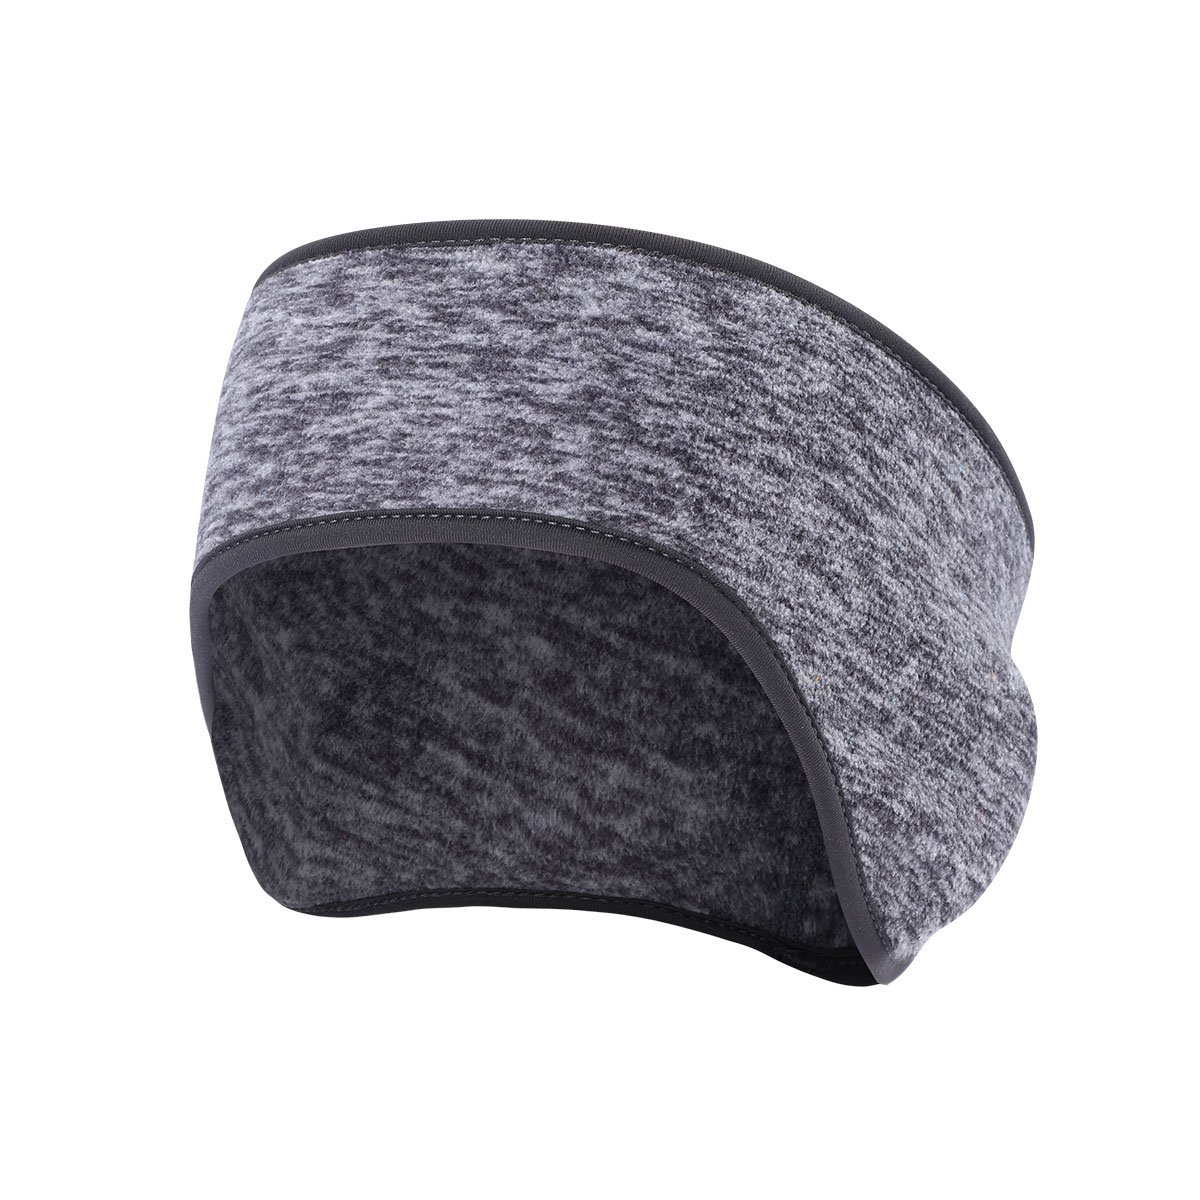 Ear Warmer Cover Headband Running Headband Cycling Cap Head Wrap